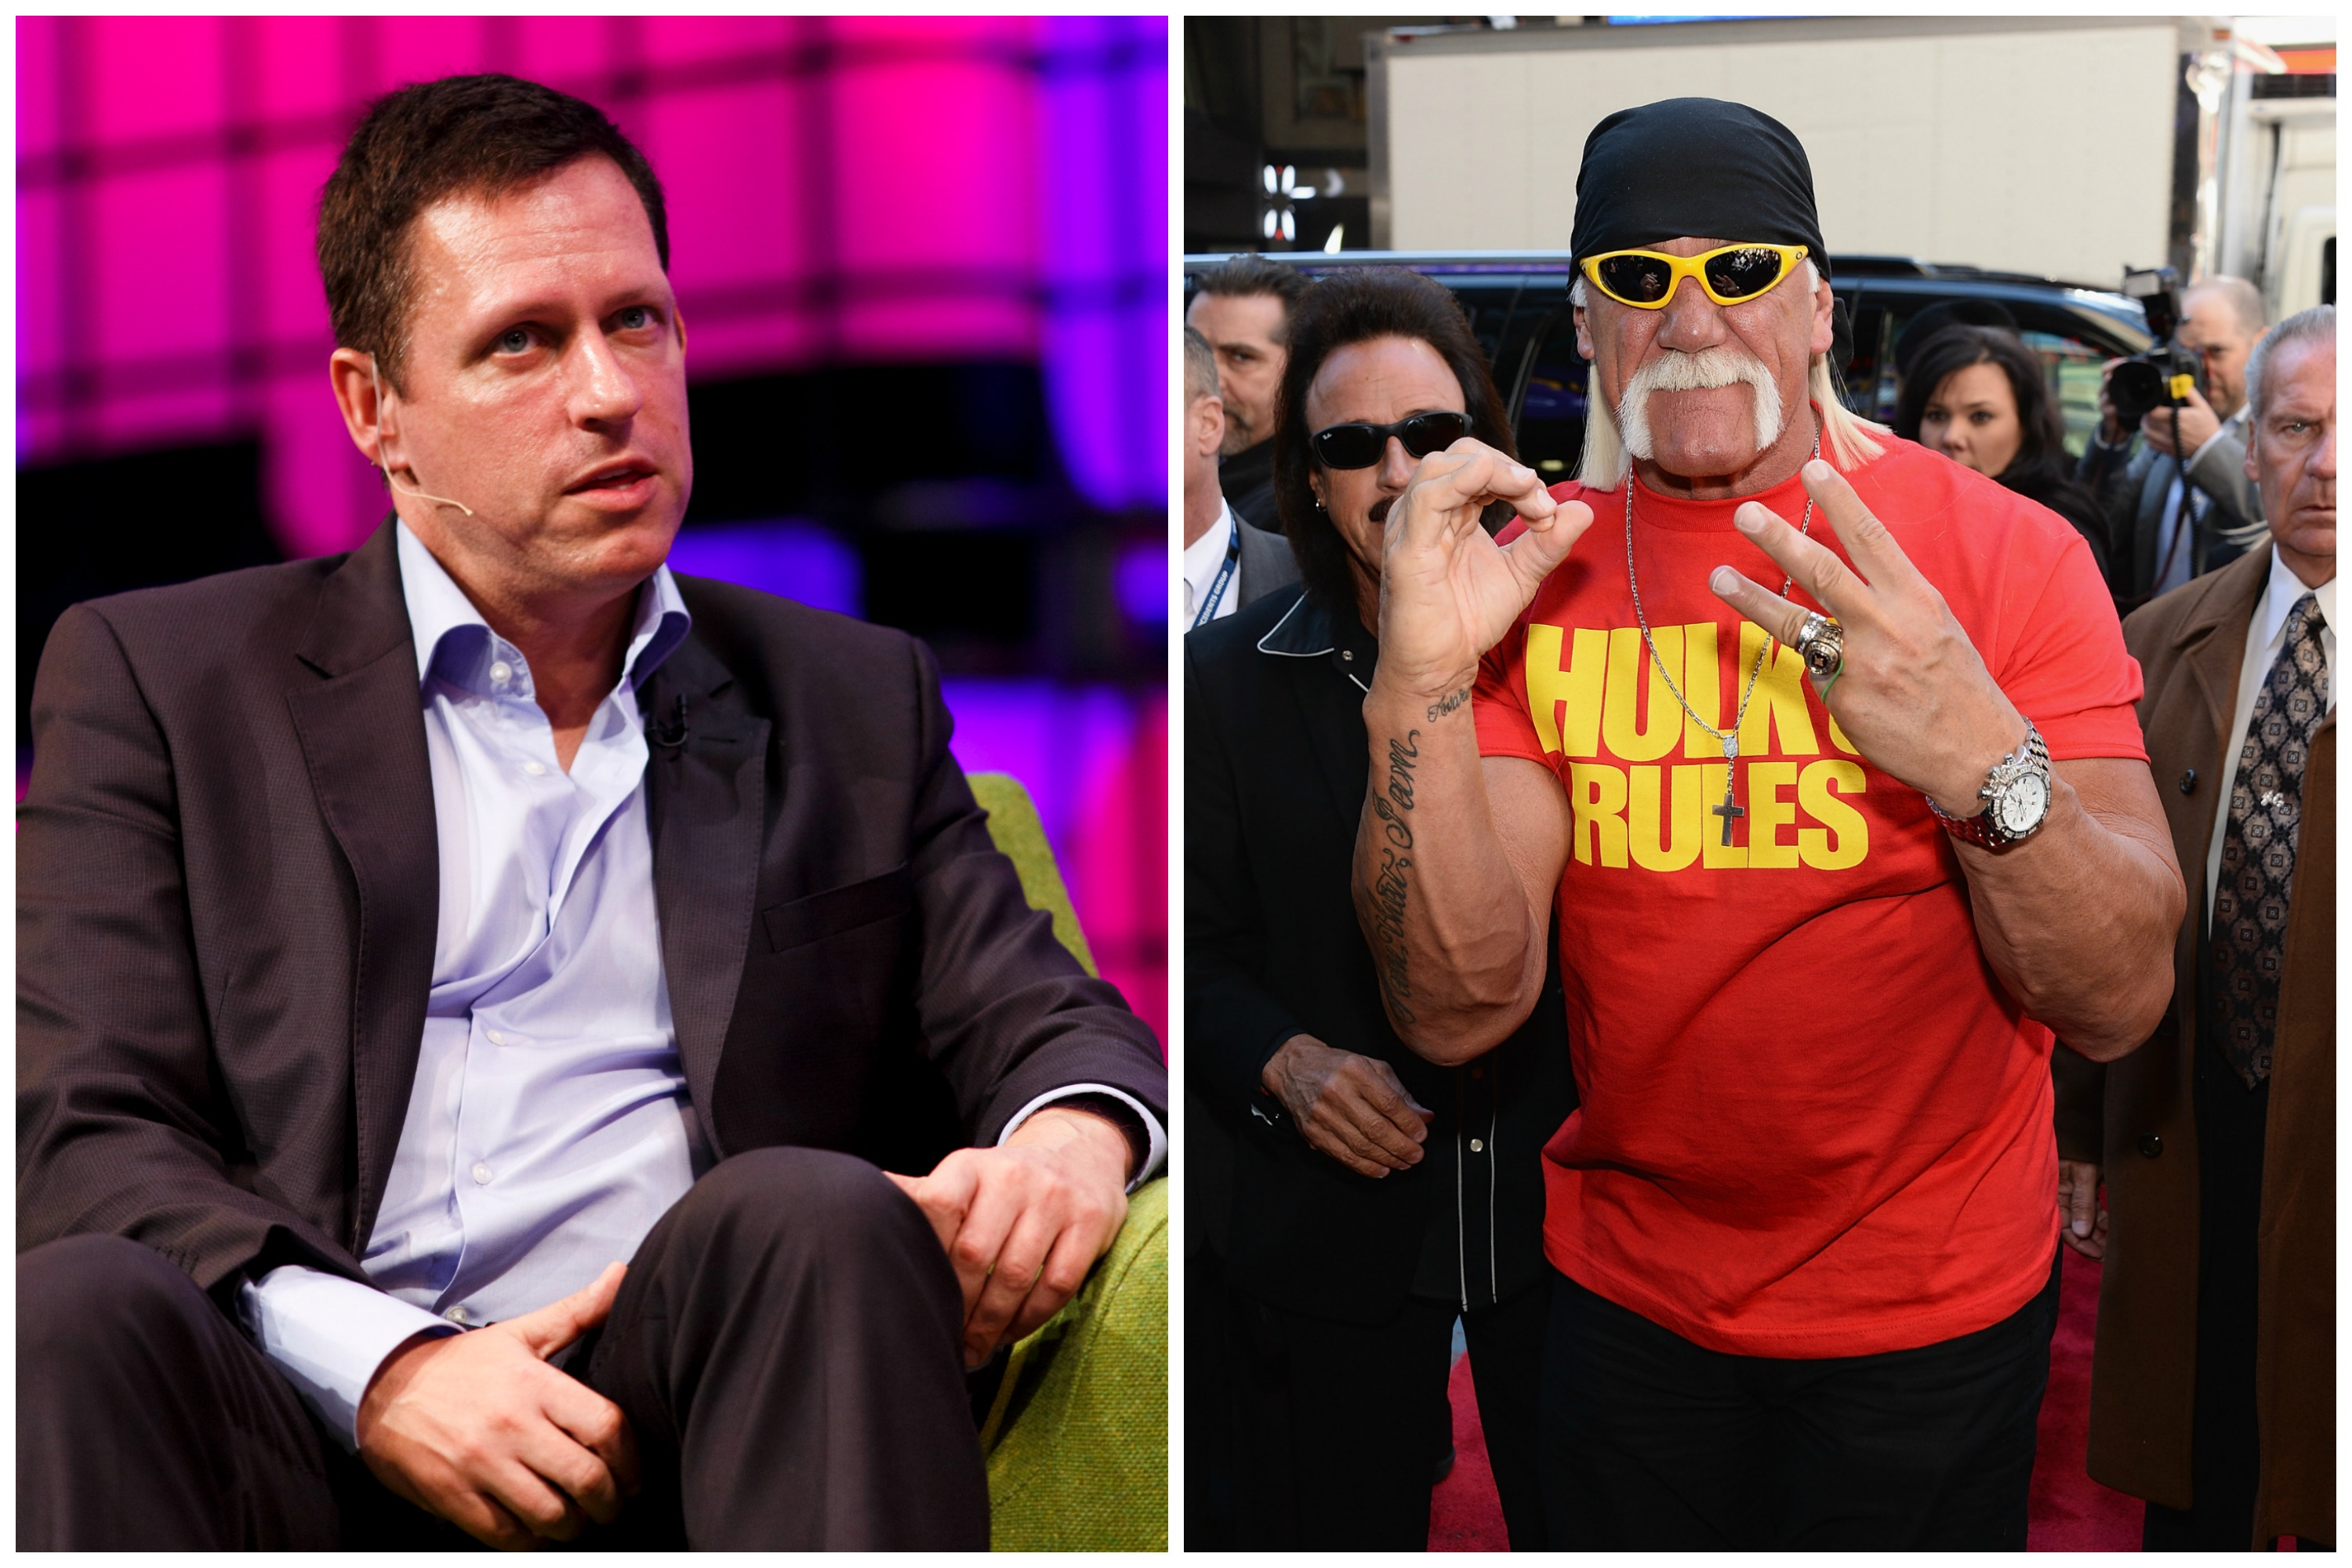 Peter Thiel's Revenge Against Gawker Is Neither Justice Nor Philanthropy